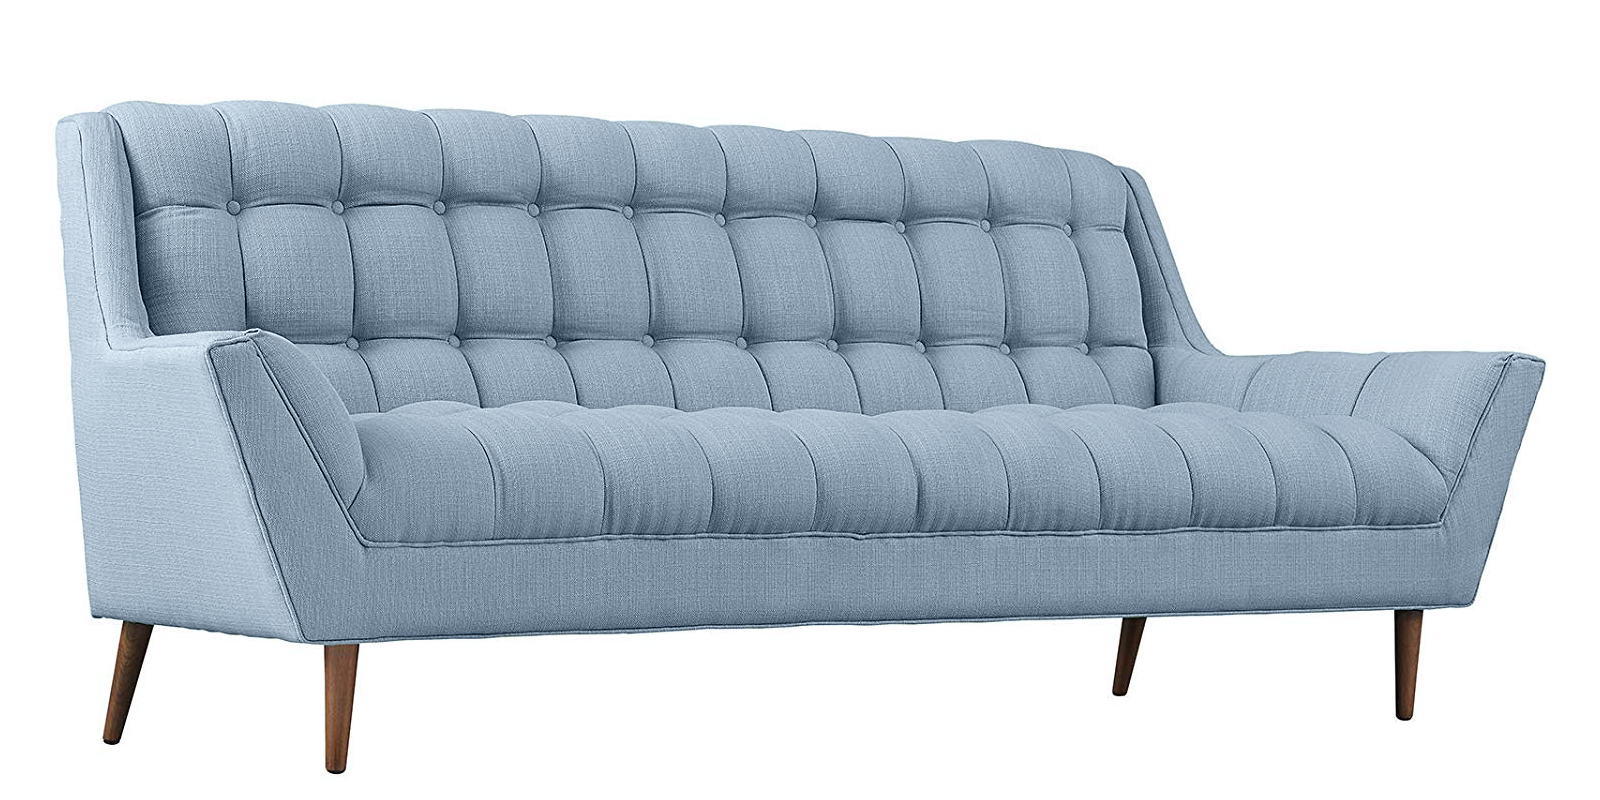 3 Seater Sofa Bed Dreams Three Seater Sofa Buy Three Seater Sofa Online Dreamzz